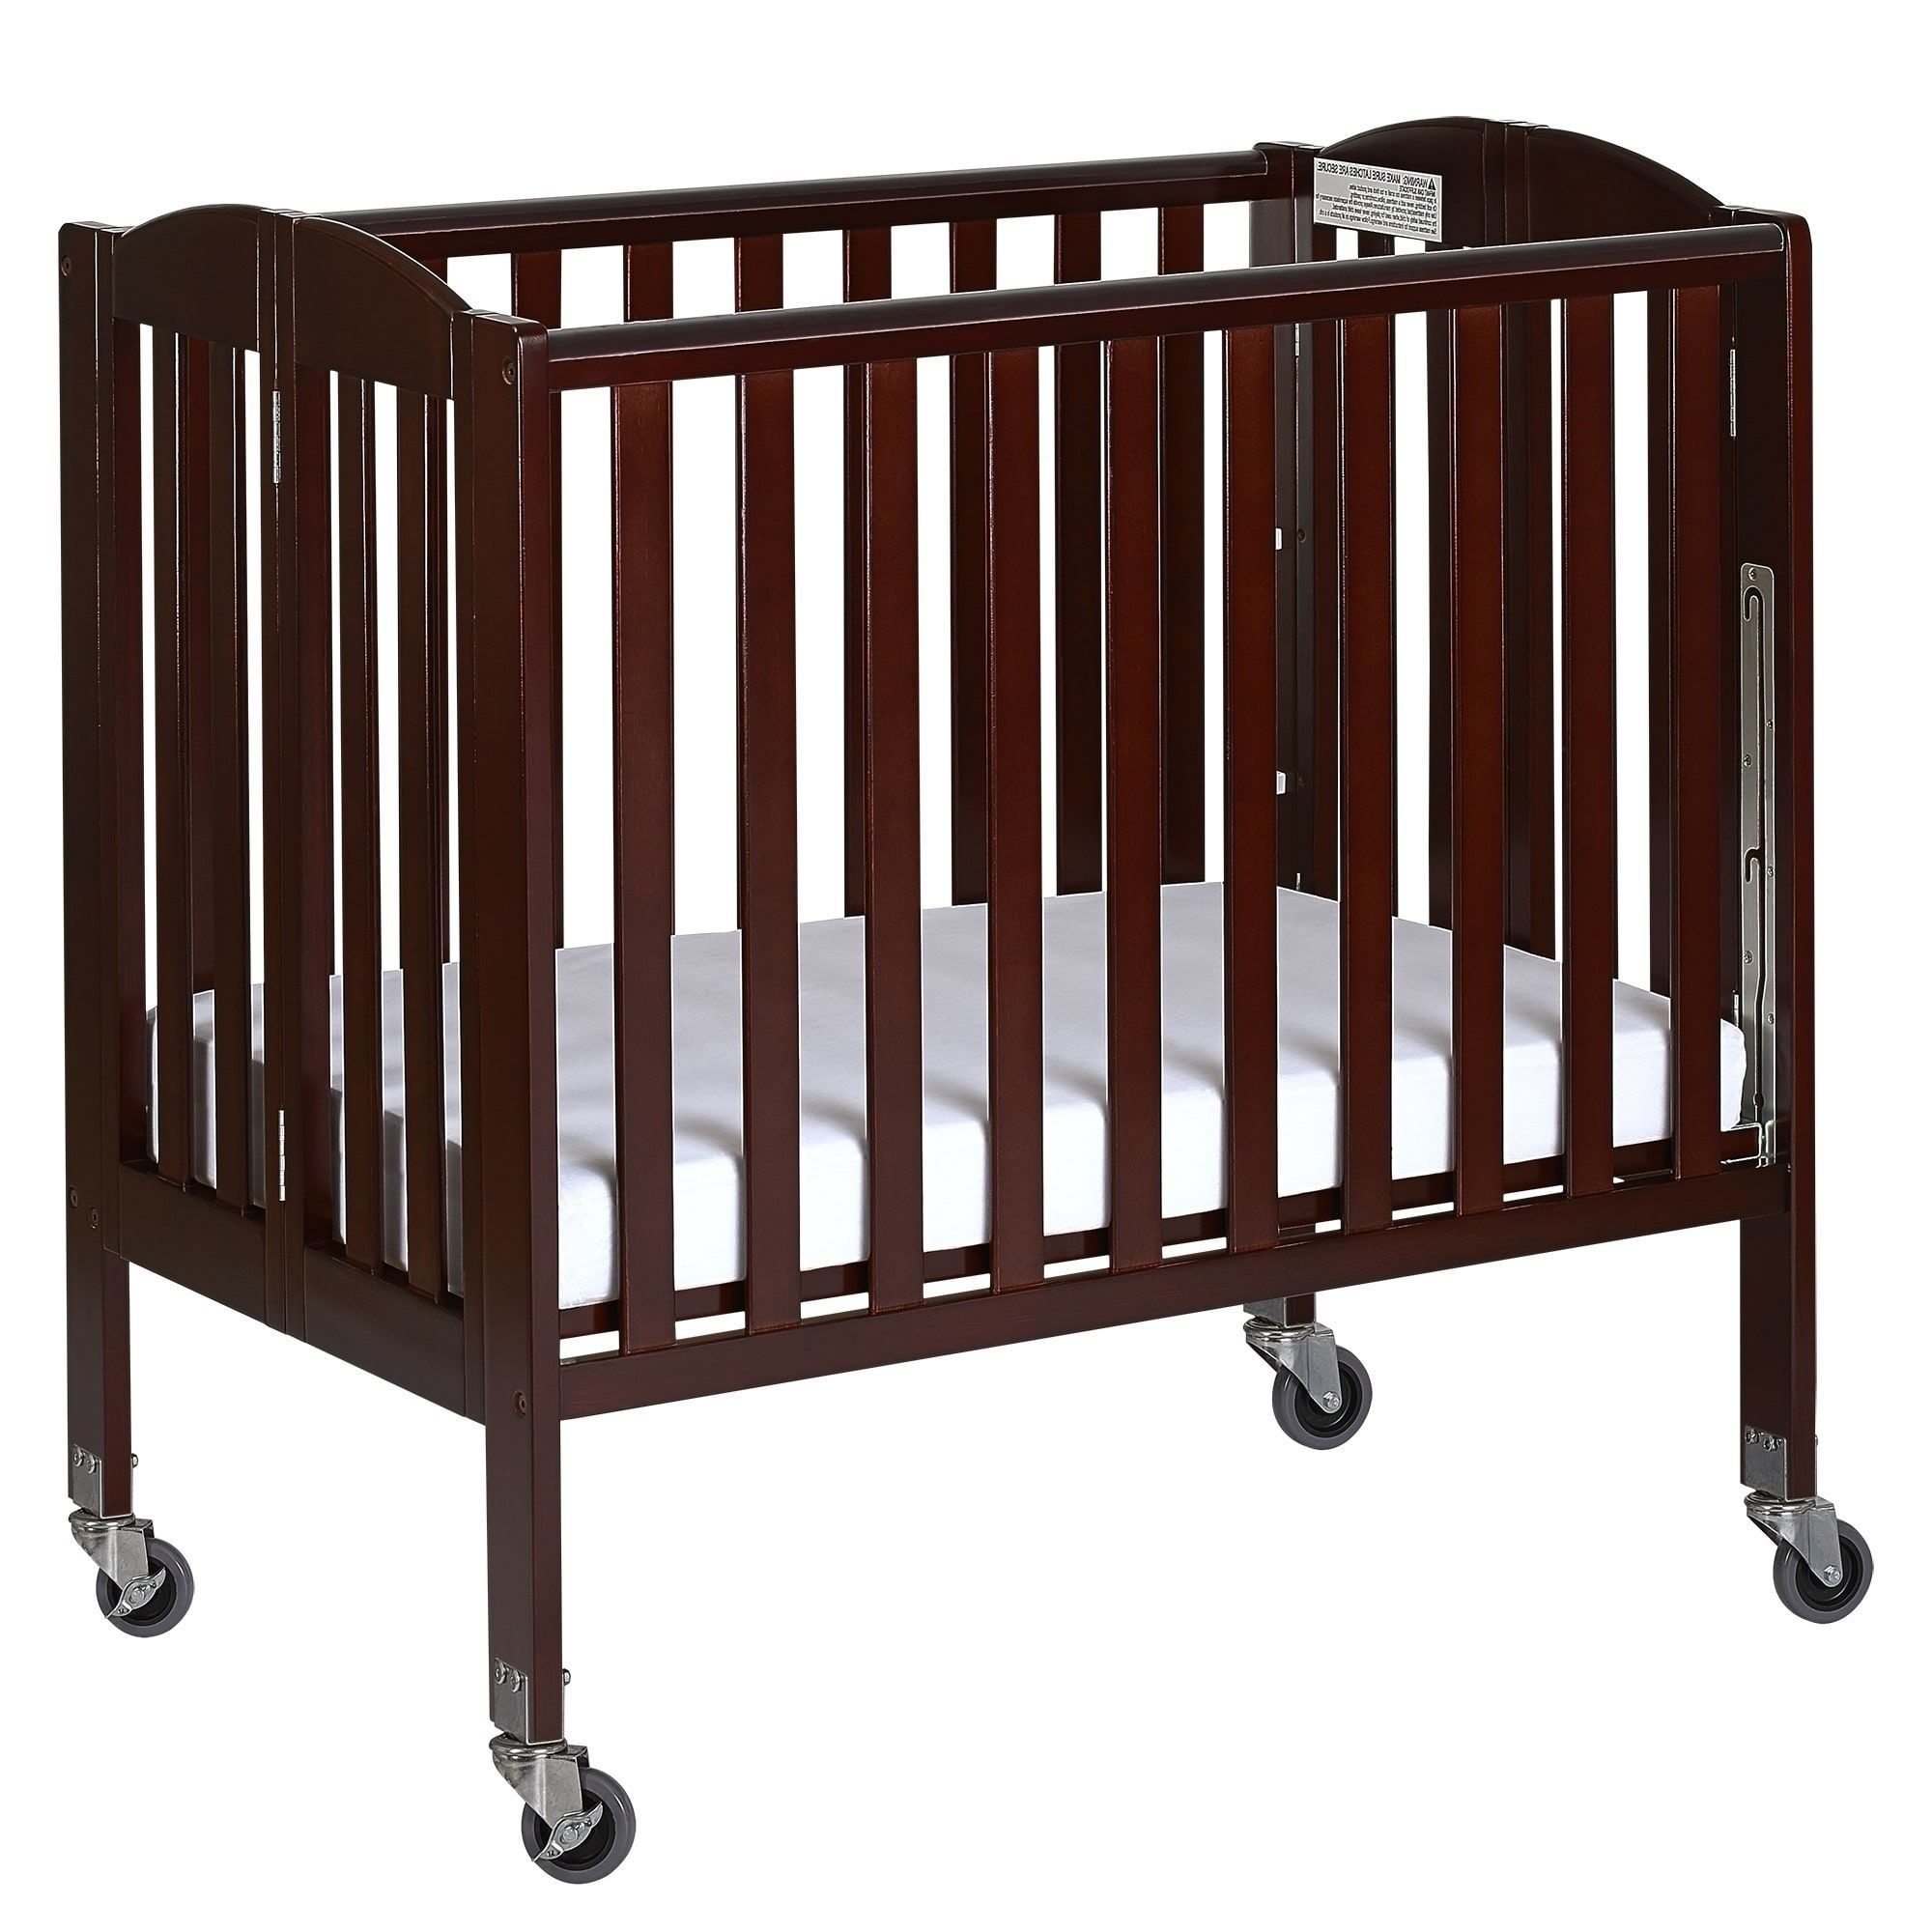 Dream On Me 3 In 1 Folding Portable Crib Assembly Required Brown Products In 2019 Portable Crib Cribs Mini Crib